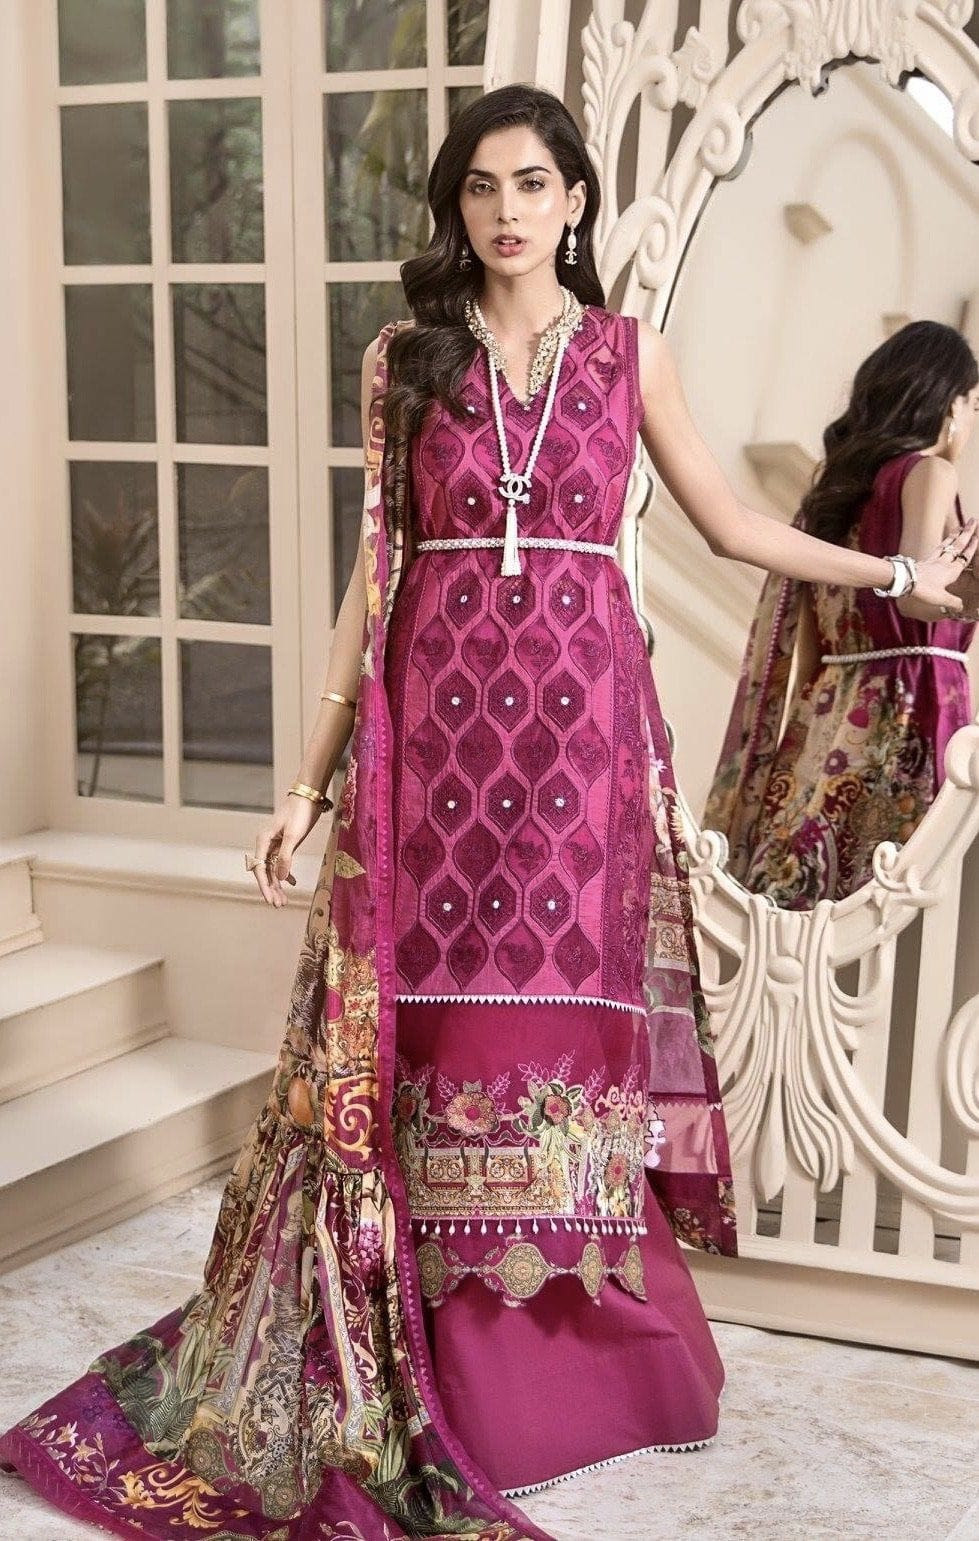 Noor 7B shoking -Heavy Embroidered 3pc lawn dress with printed chiffon dupatta.